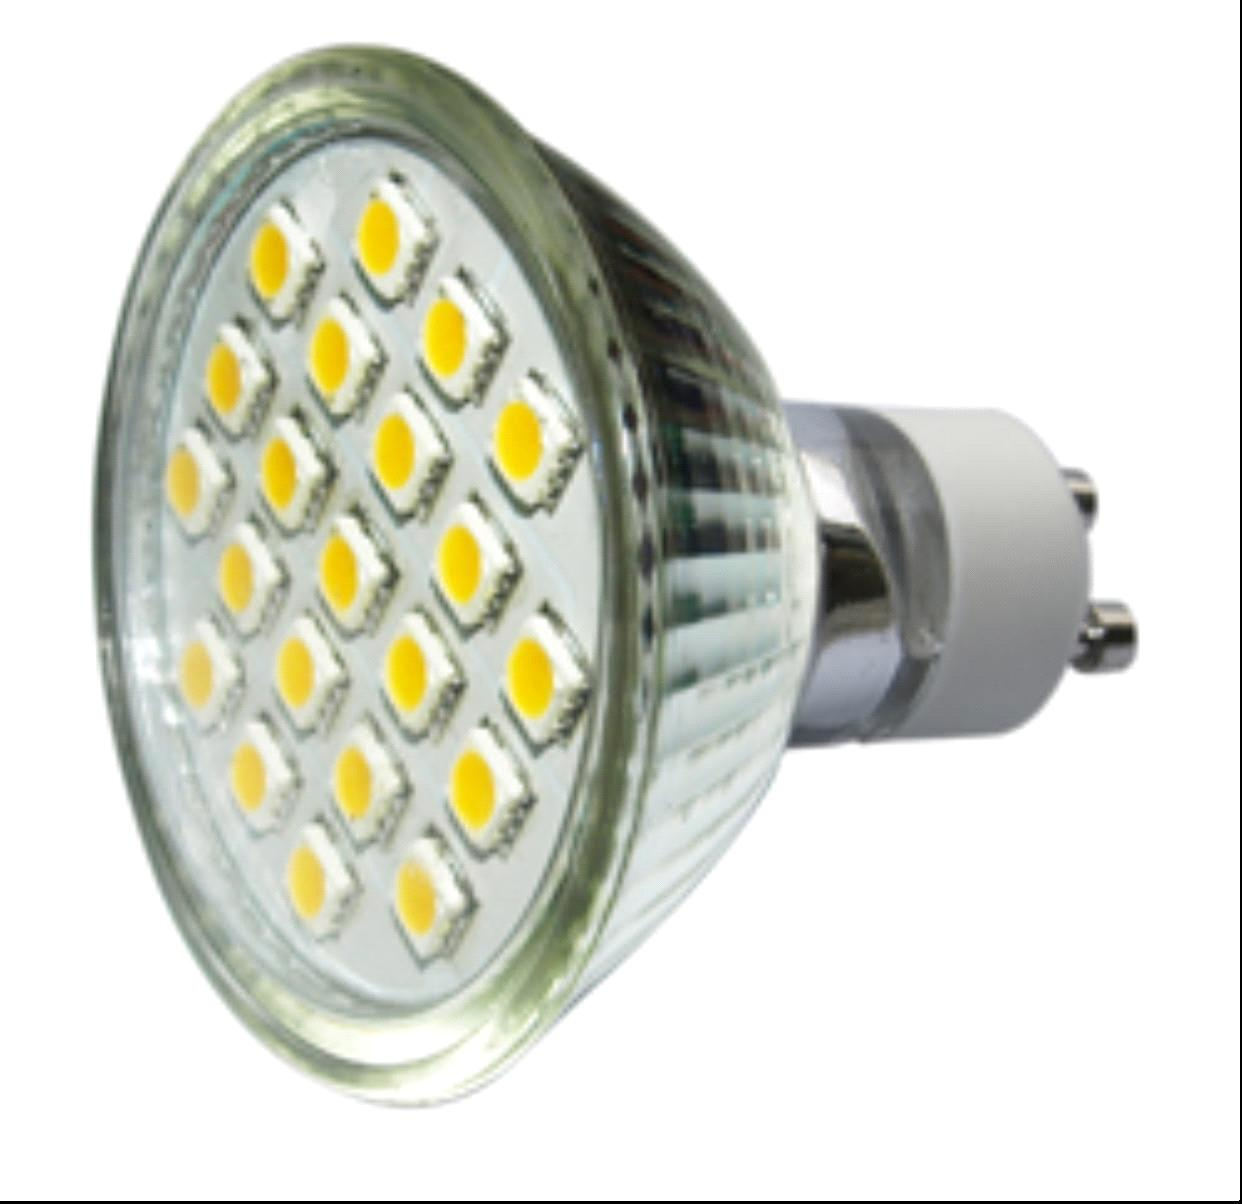 LED ManufacturerManufactory China bulbs GU10 SMD from cL3jR4A5qS